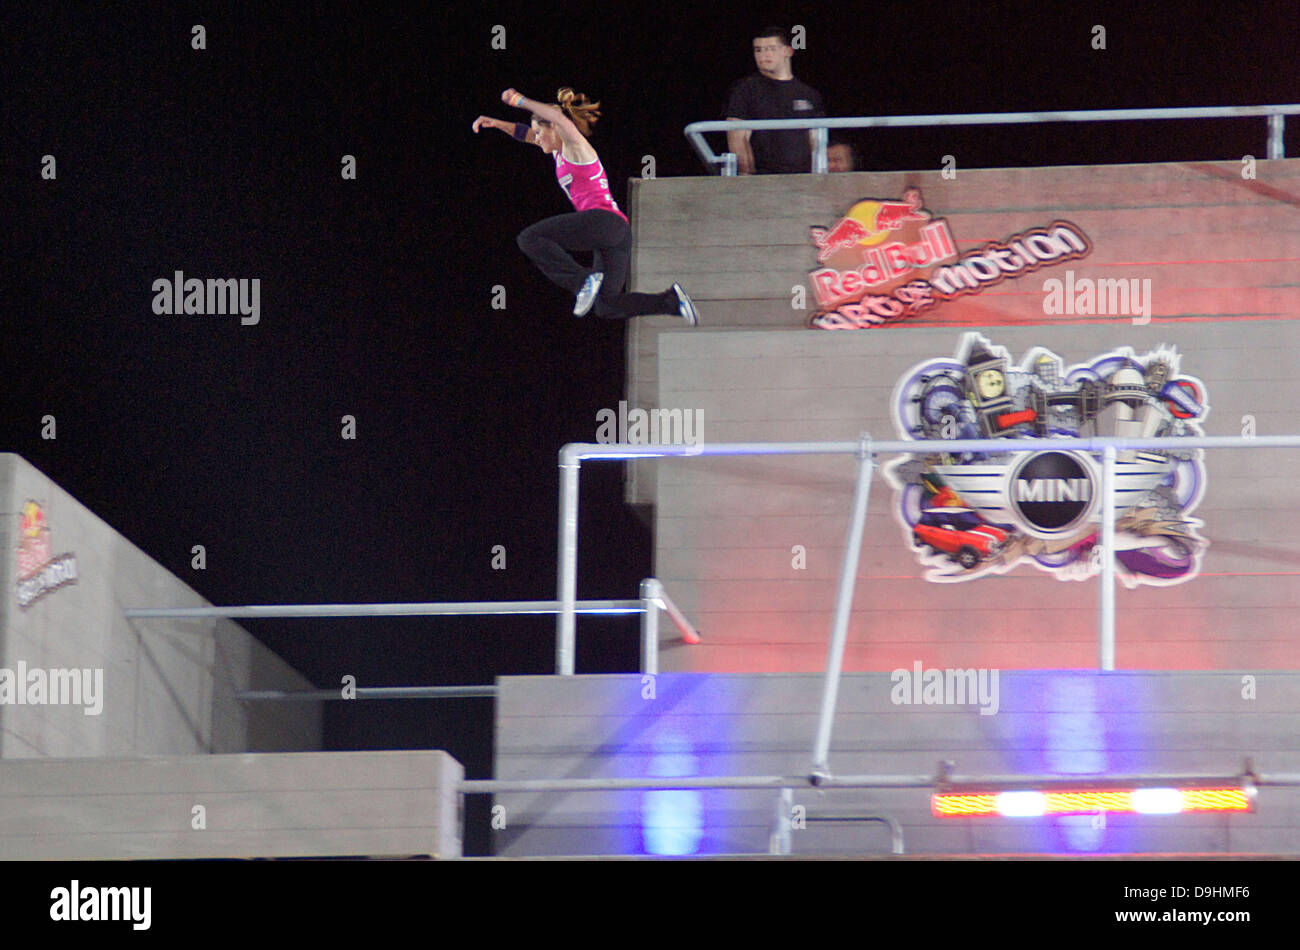 Luci Romberg ,  Free running at the UK Red Bull Art of Motion Champion 2011 at the National Theatre London, England Stock Photo